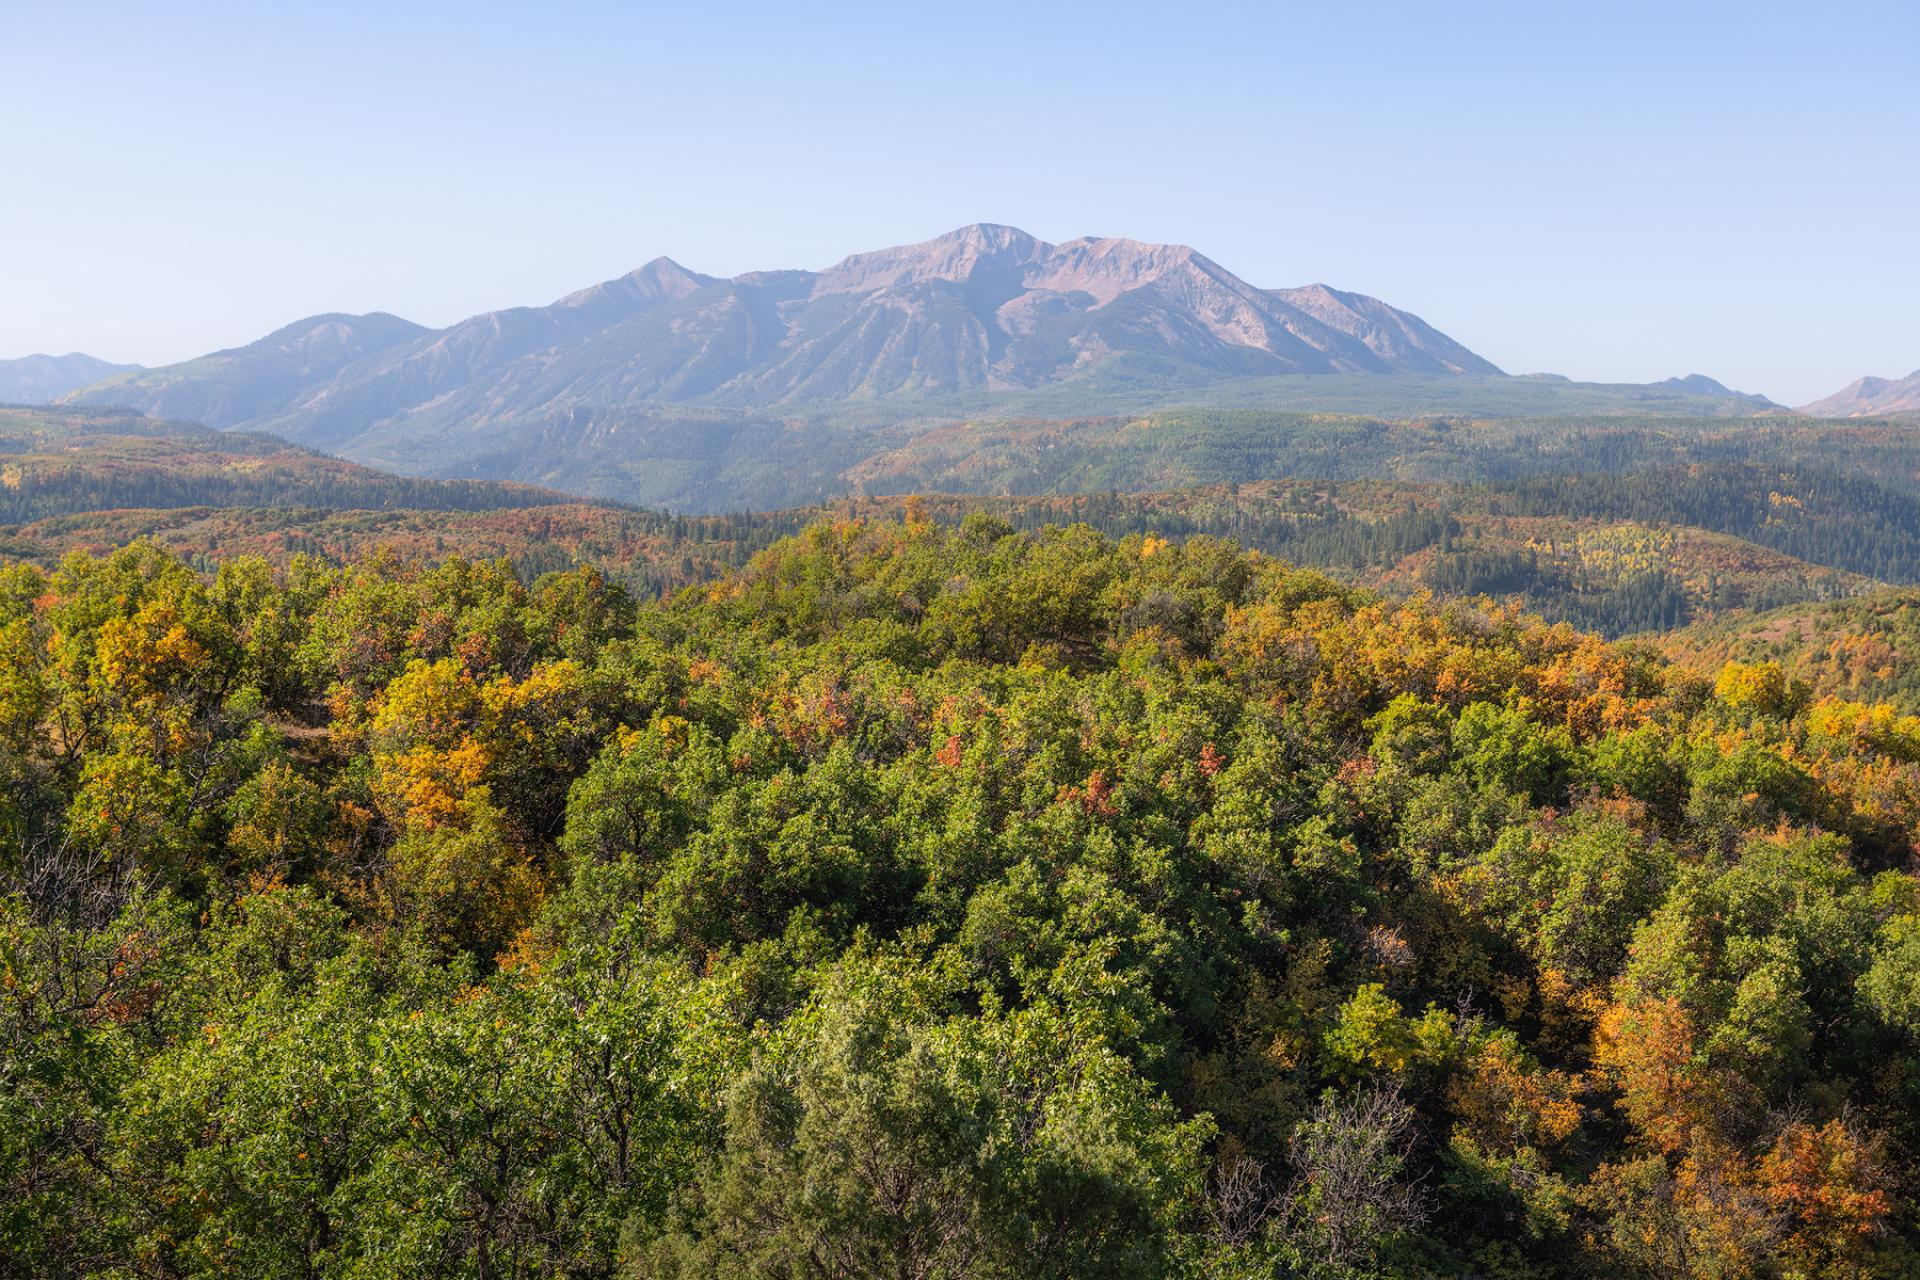 Mountains and fall foliage in North Fork Valley, Colorado.